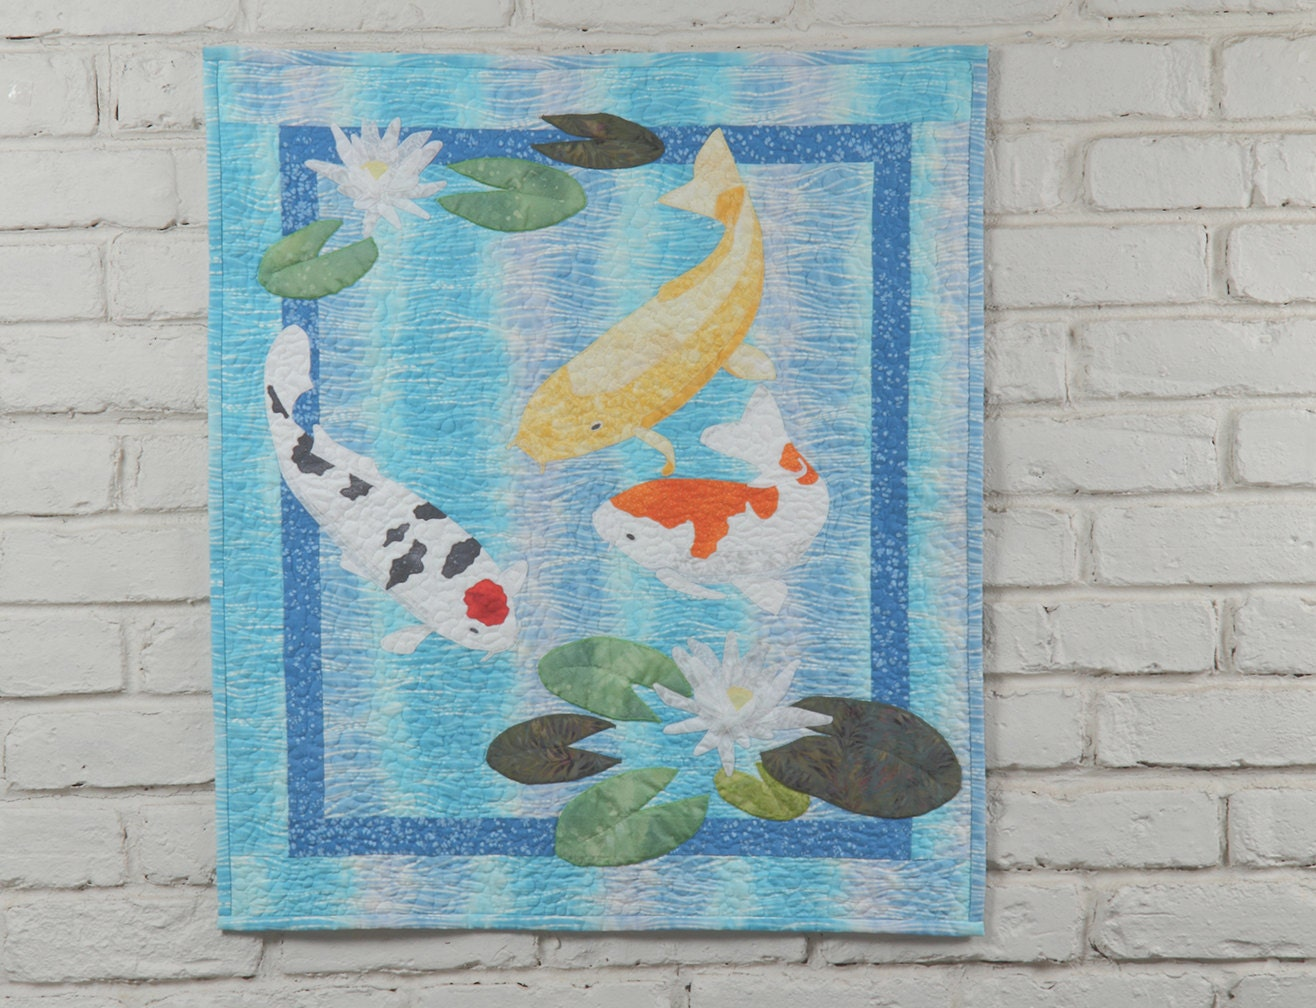 Koi wall quilt pattern for Koi pond quilt pattern